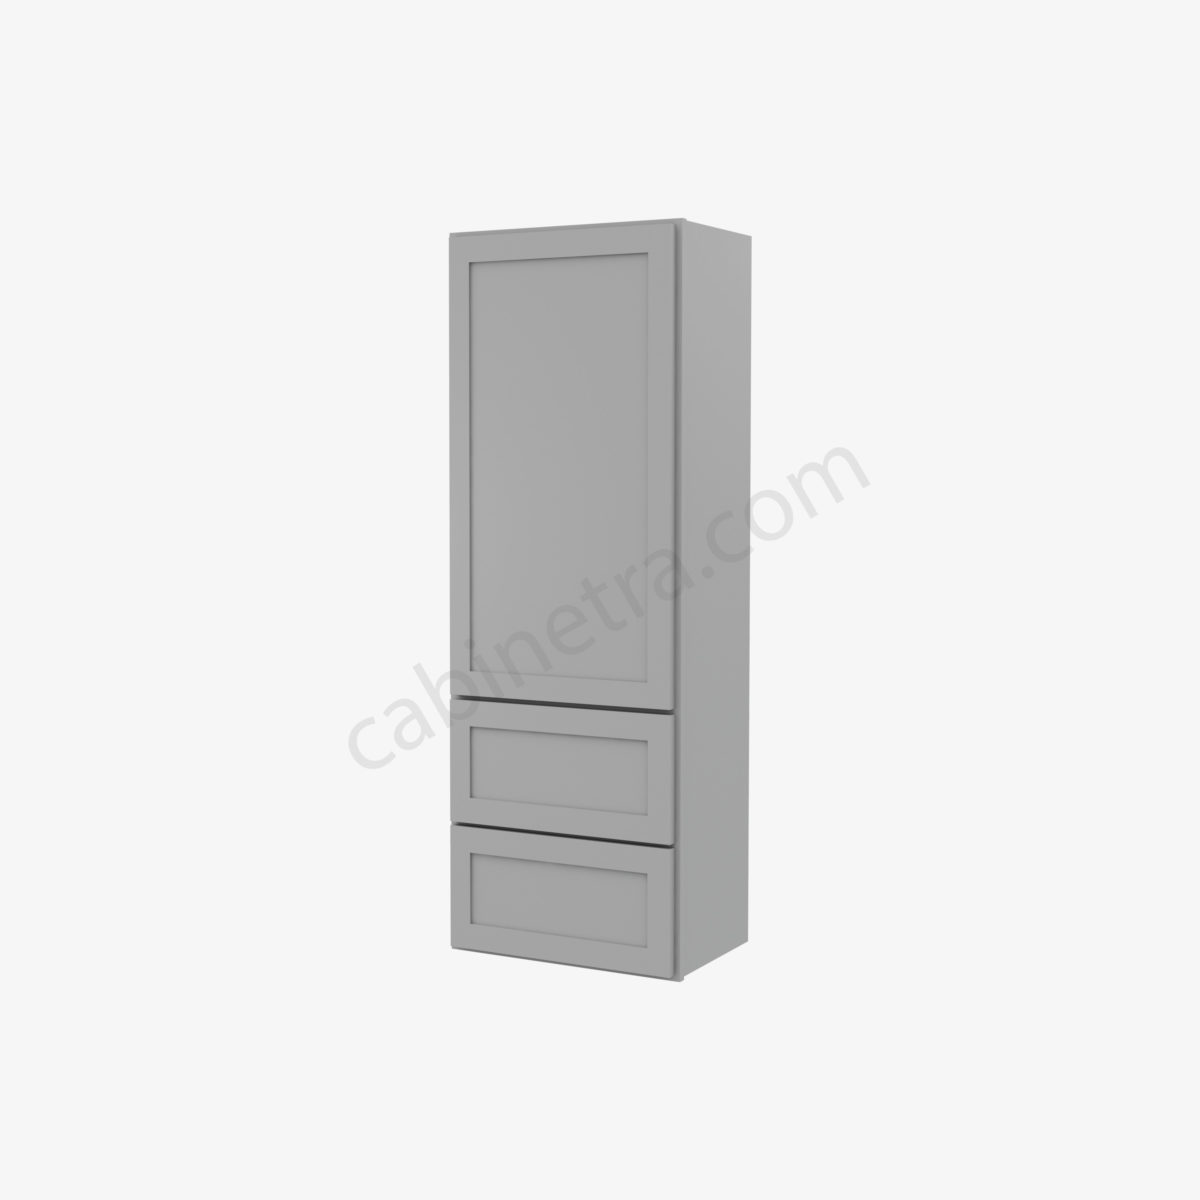 AB W2D1854 0 Forevermark Lait Gray Shaker Cabinetra scaled